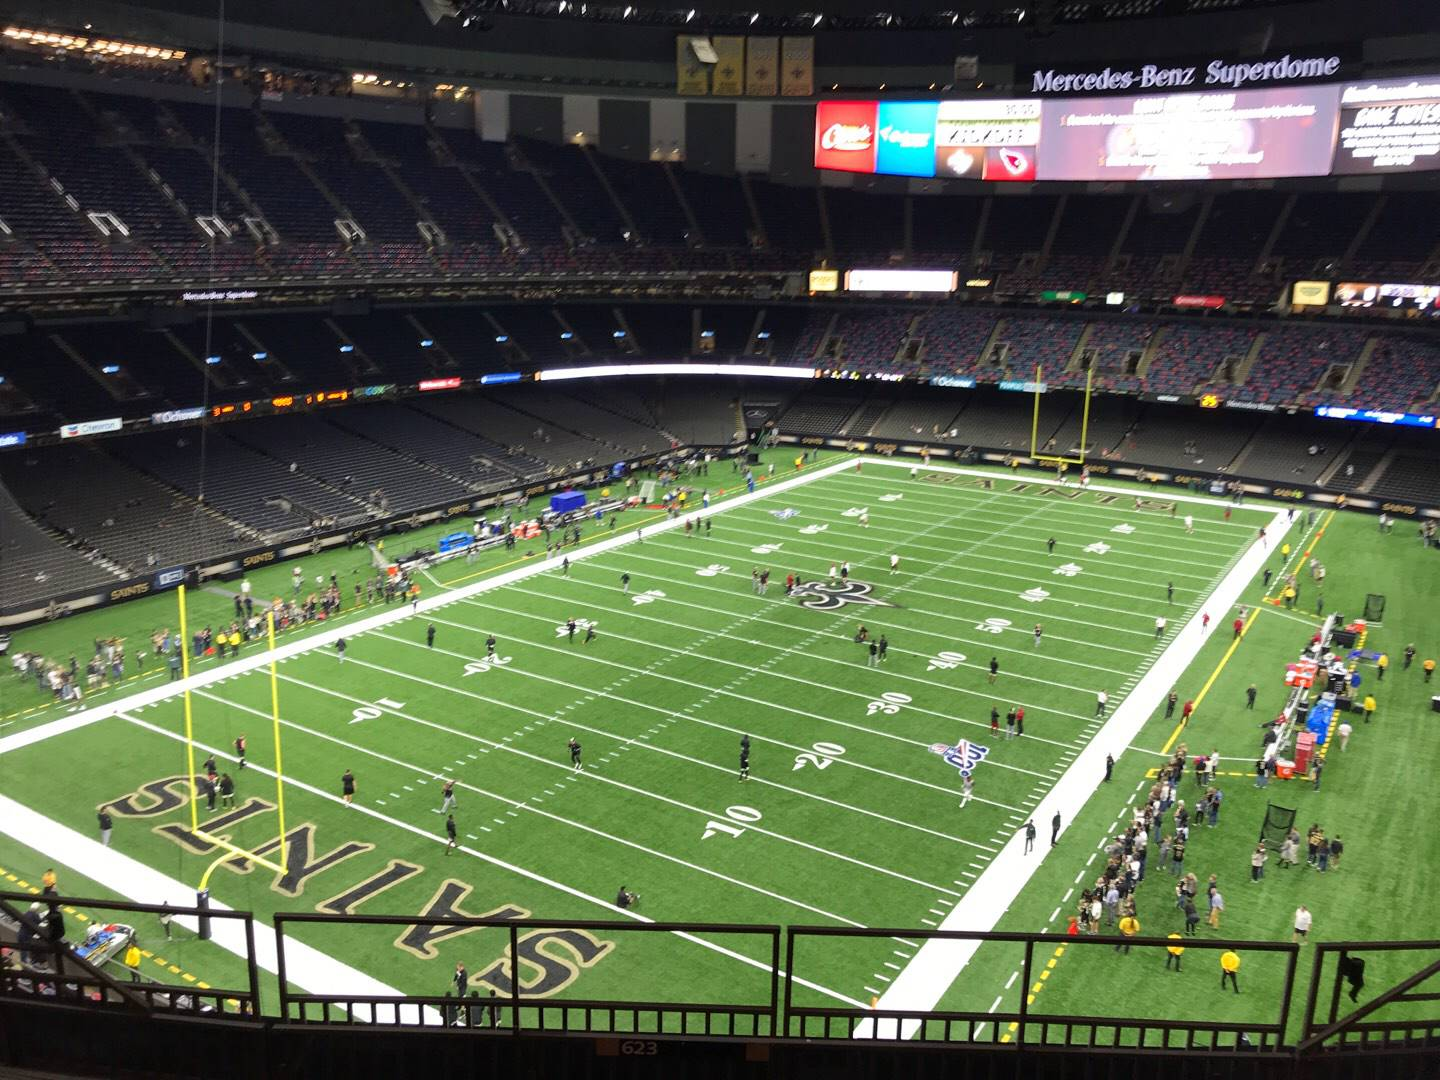 Mercedes-Benz Superdome Section 623 Row 7 Seat 8